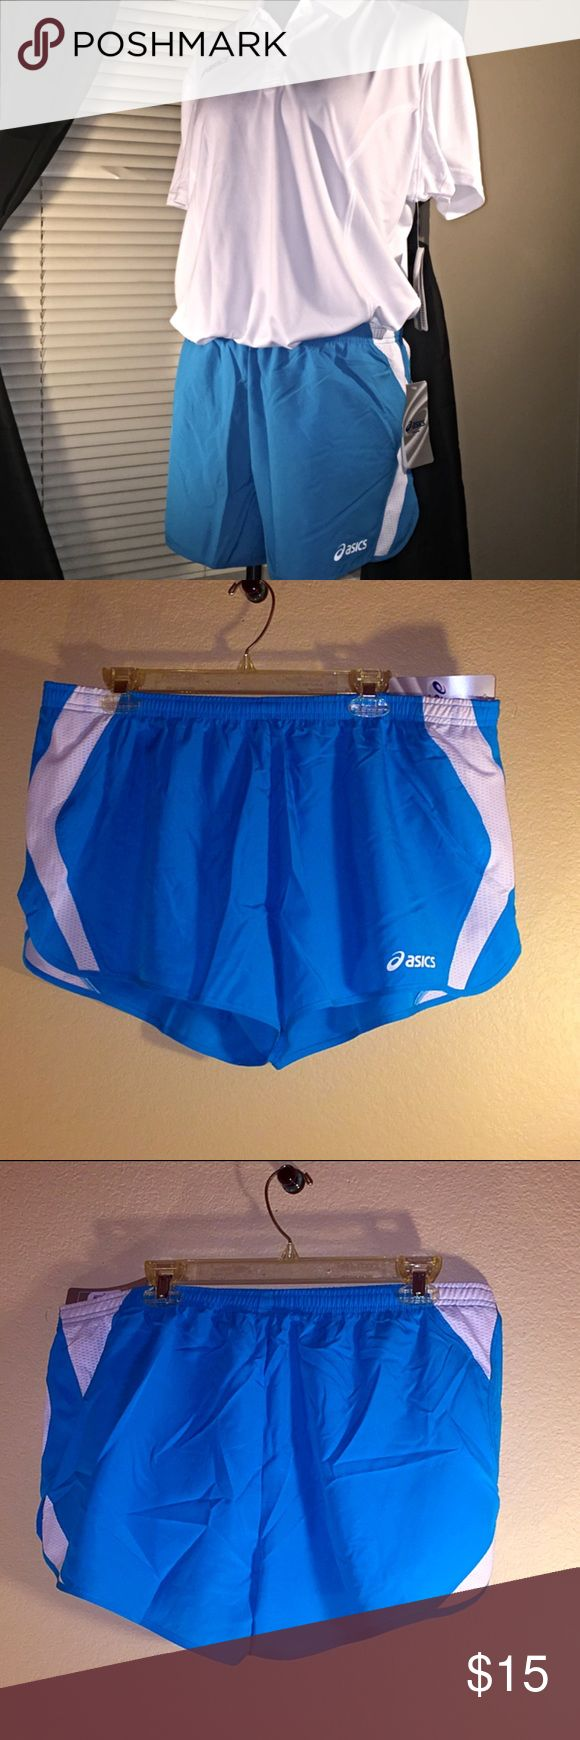 ASICS Blue and White Shorts NWT! Retail $32, 100% Polyester, Squad Split Shorts. asics Shorts